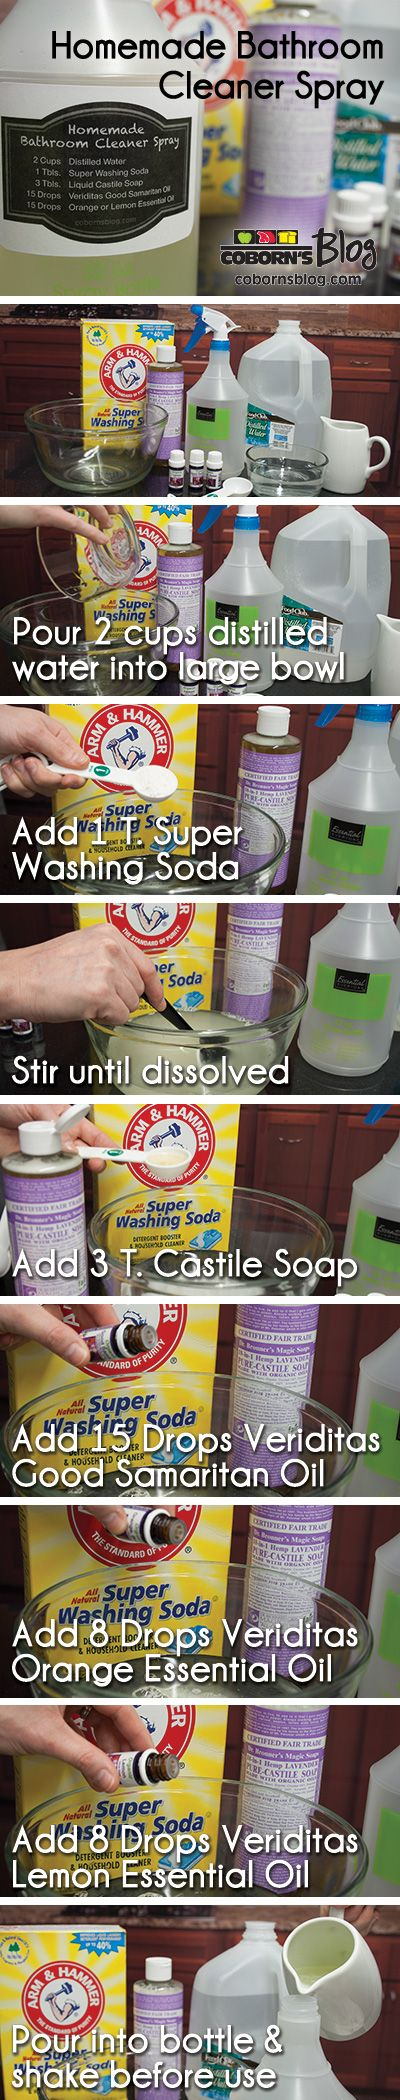 Homemade cleaning products for bathroom - How To Make Diy Homemade Bathroom Cleaner Spray With Essential Oils Www Cobornsblog